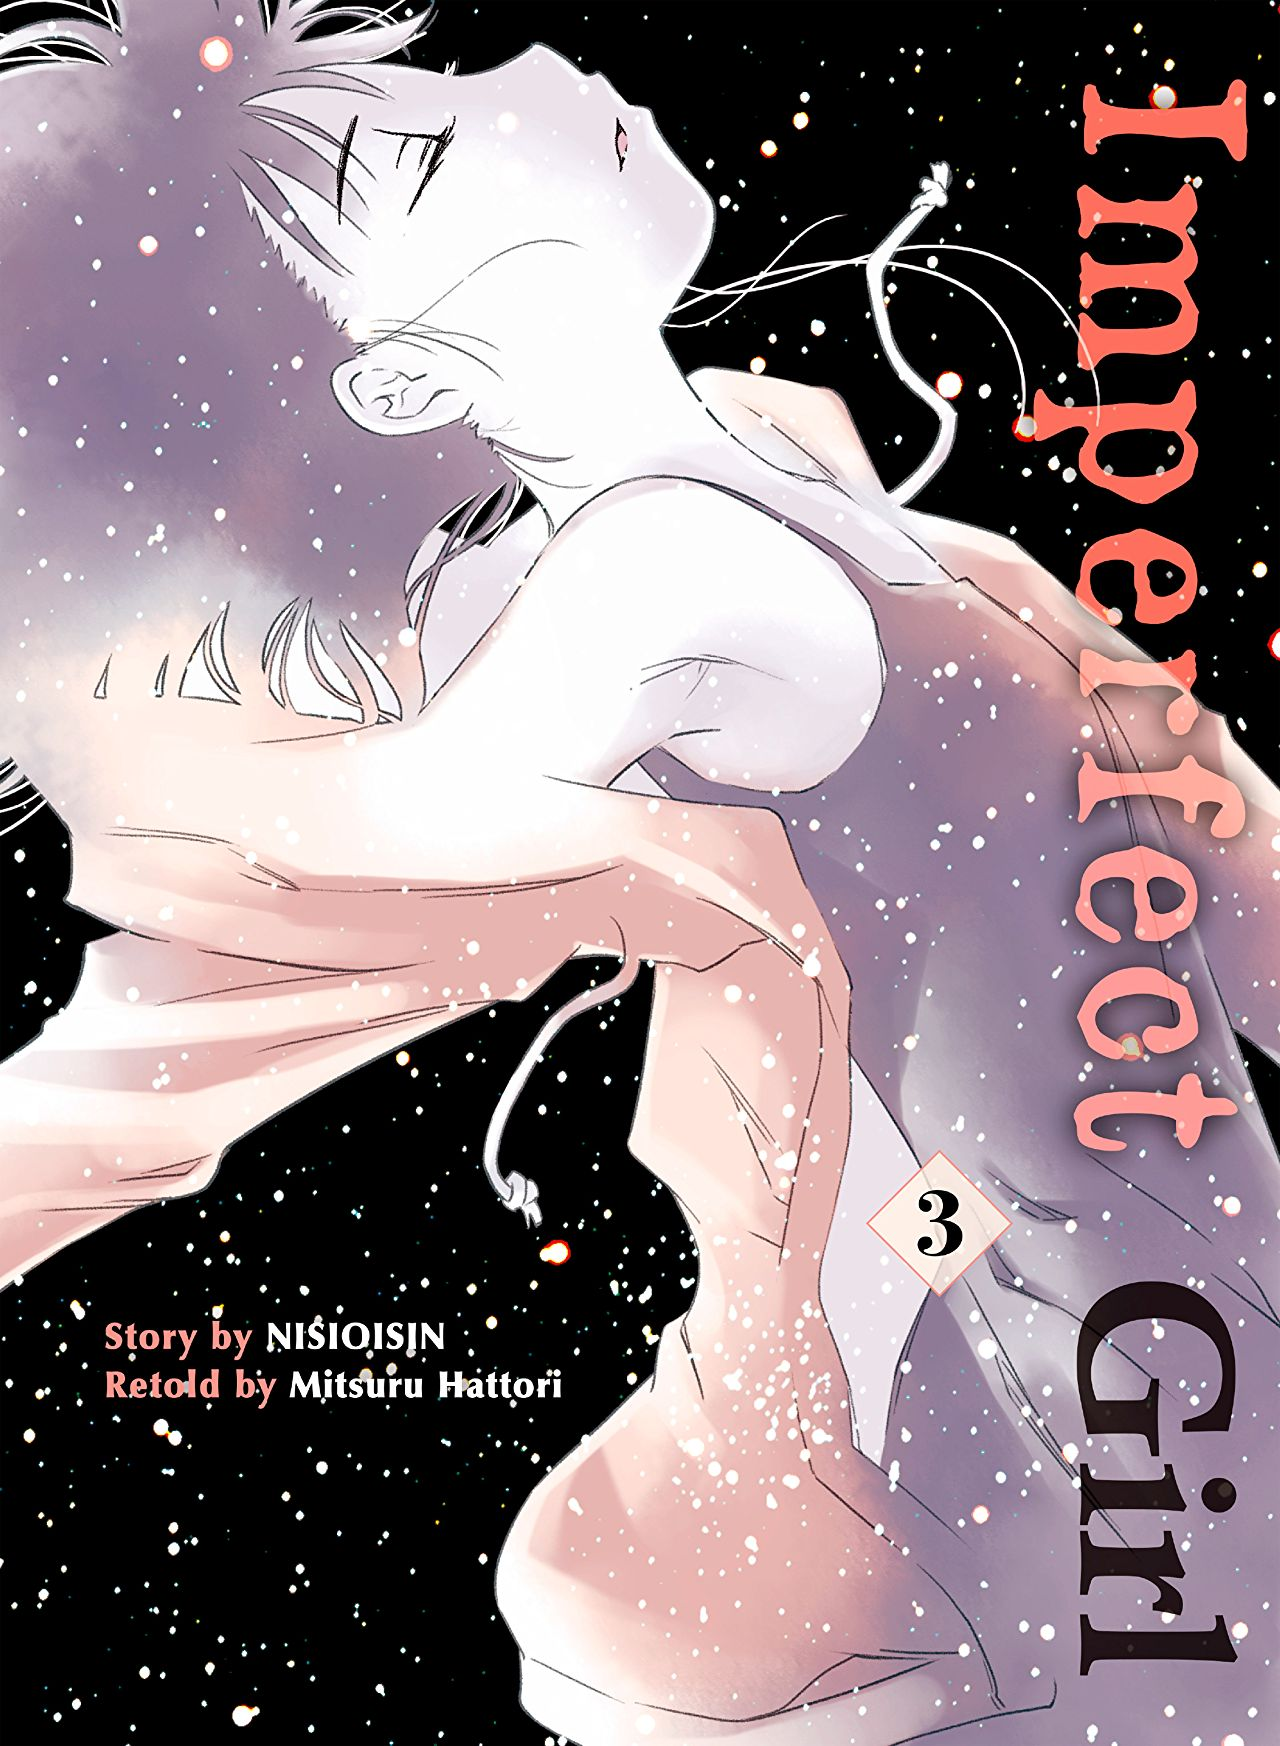 Imperfect Girl Vol. 3 Review